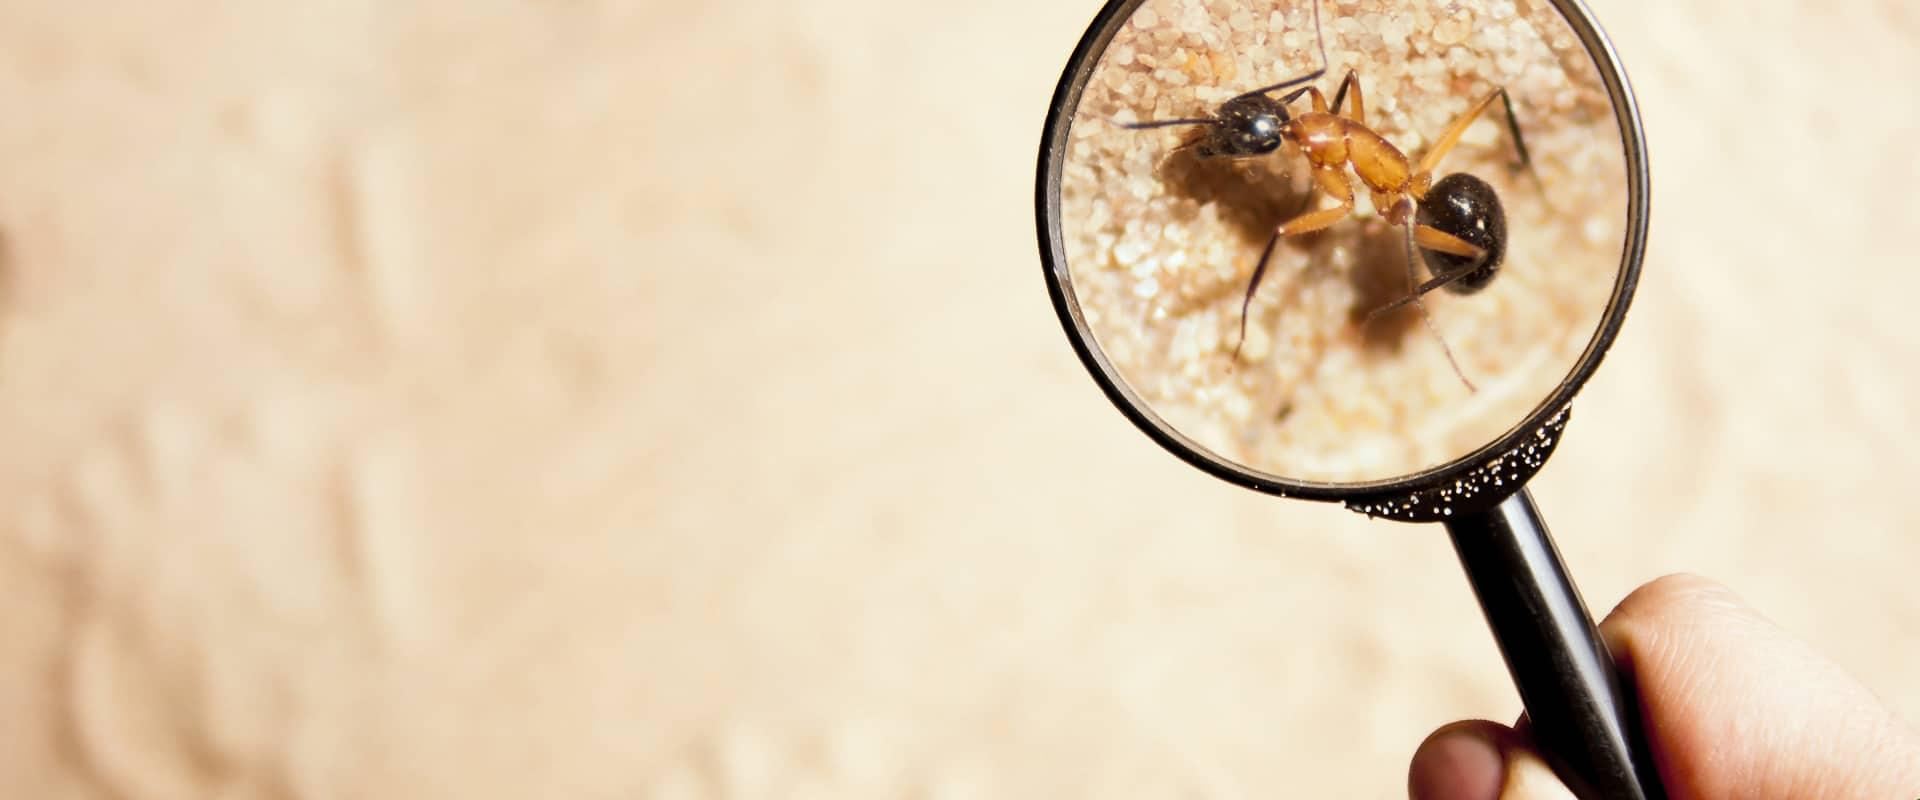 an ant being viewed through a magnifying glass in vail colorado